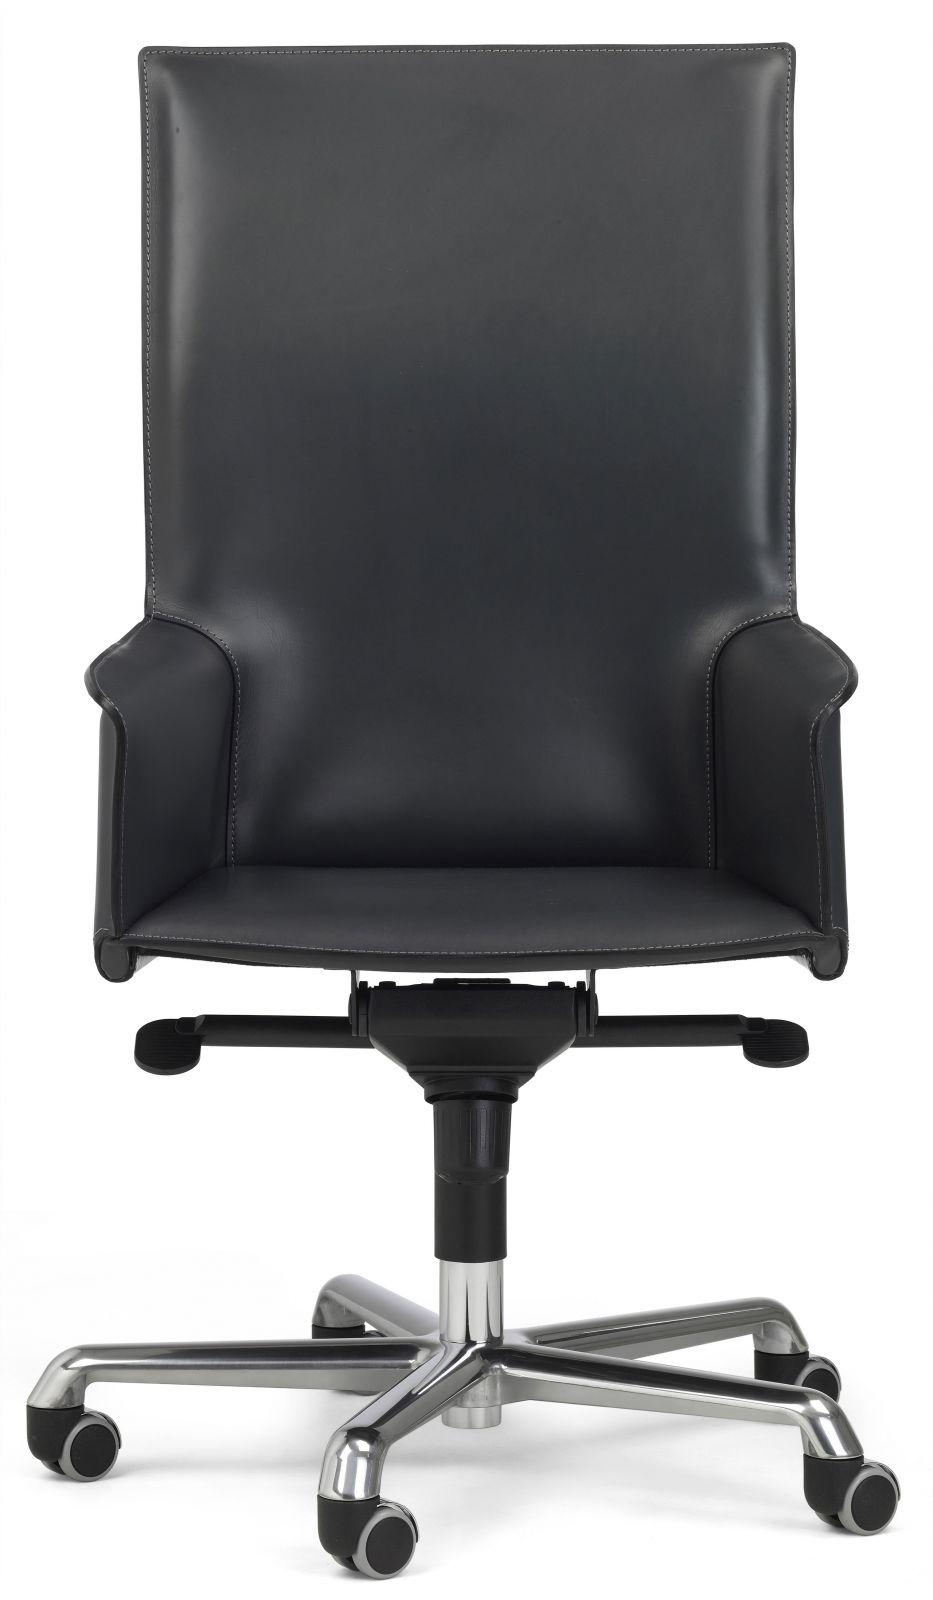 modern-office-chairs-Italian-furniture-designer-chairs (73).jpg